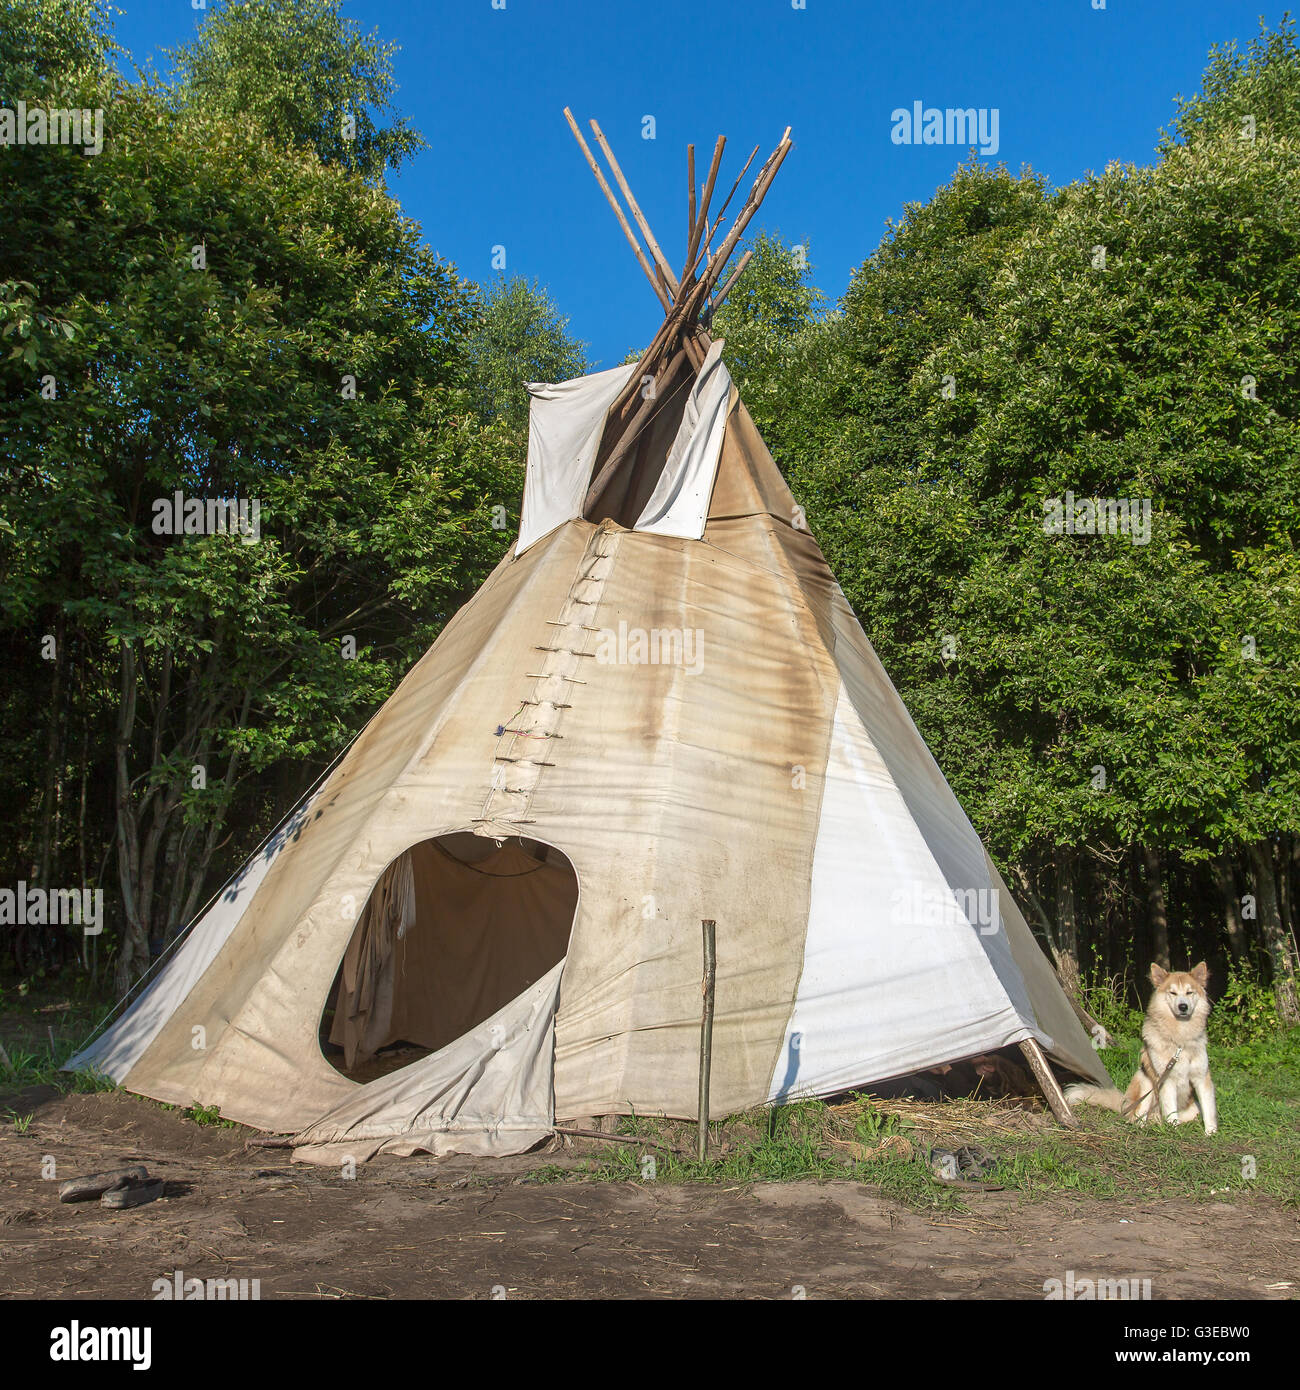 A single, solitary teepee in a forest. Tepees were traditional housing for Native Americans in Great Plains and - Stock Image